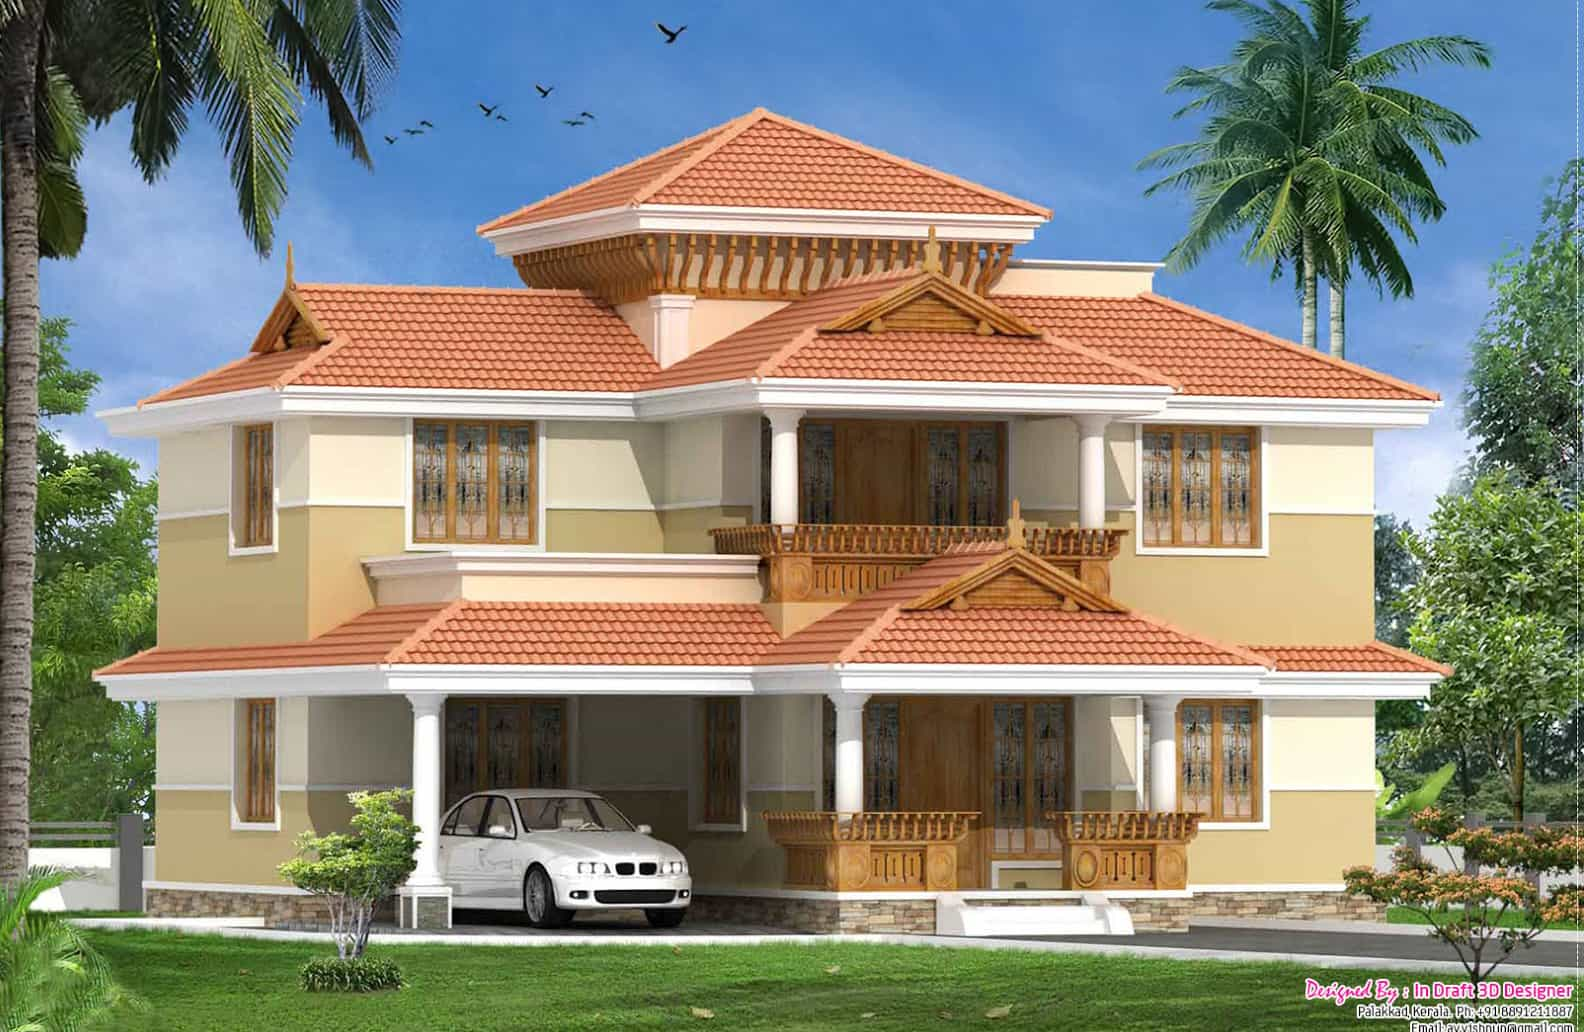 Traditional malayalee 3bhk home design at 2060 for Kerala house models and plans